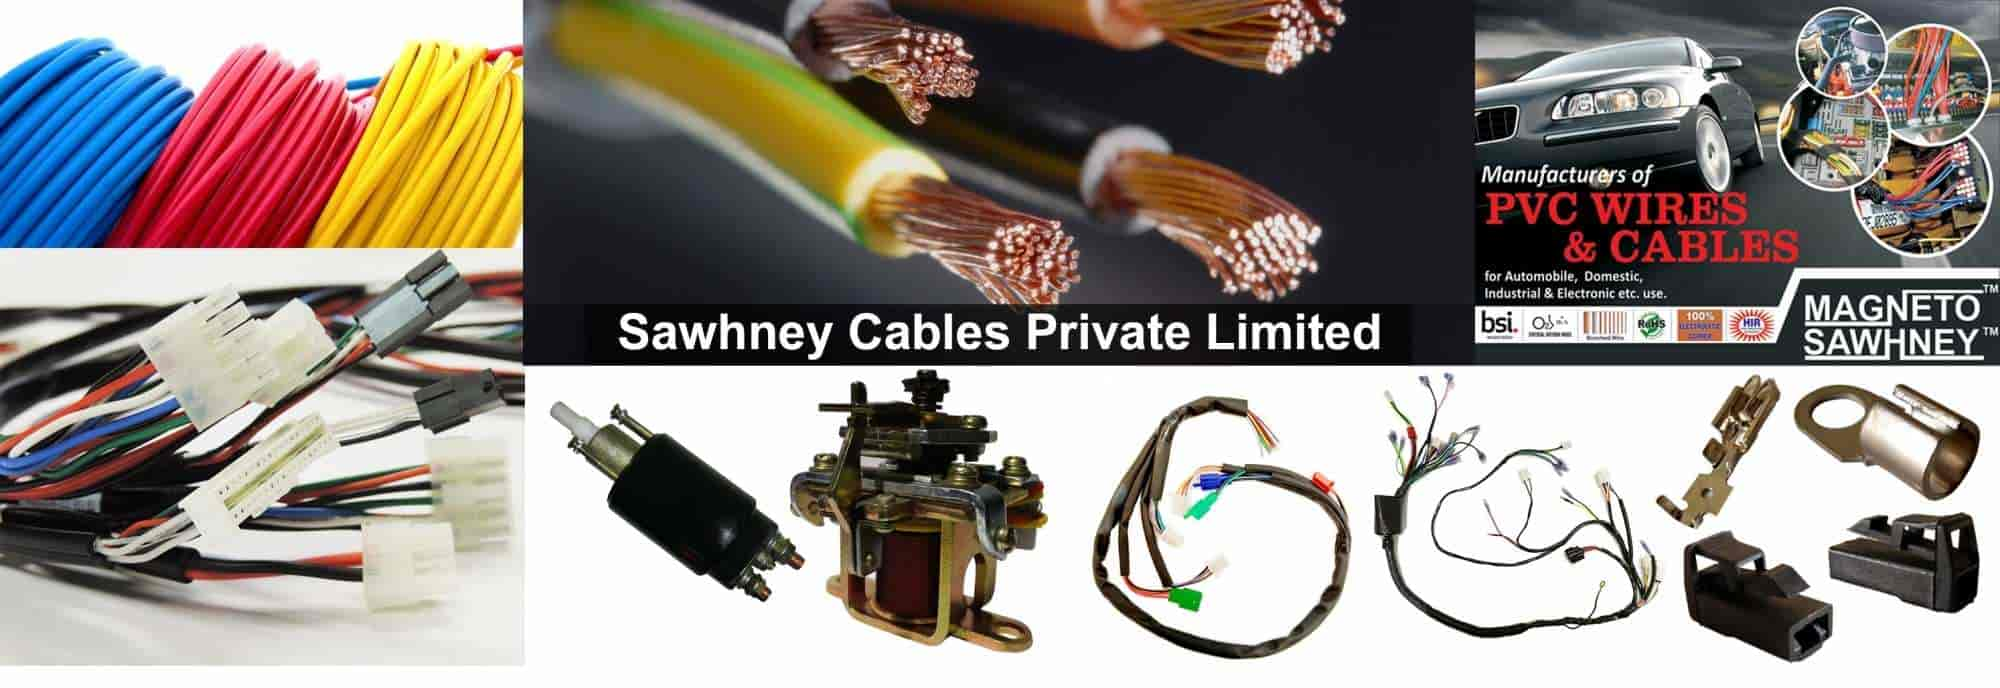 Sawhney Cables Private Limited Rai Pvc Insulated Wire Wiring Harness Industry In Chennai Manufacturers Sonepat Justdial